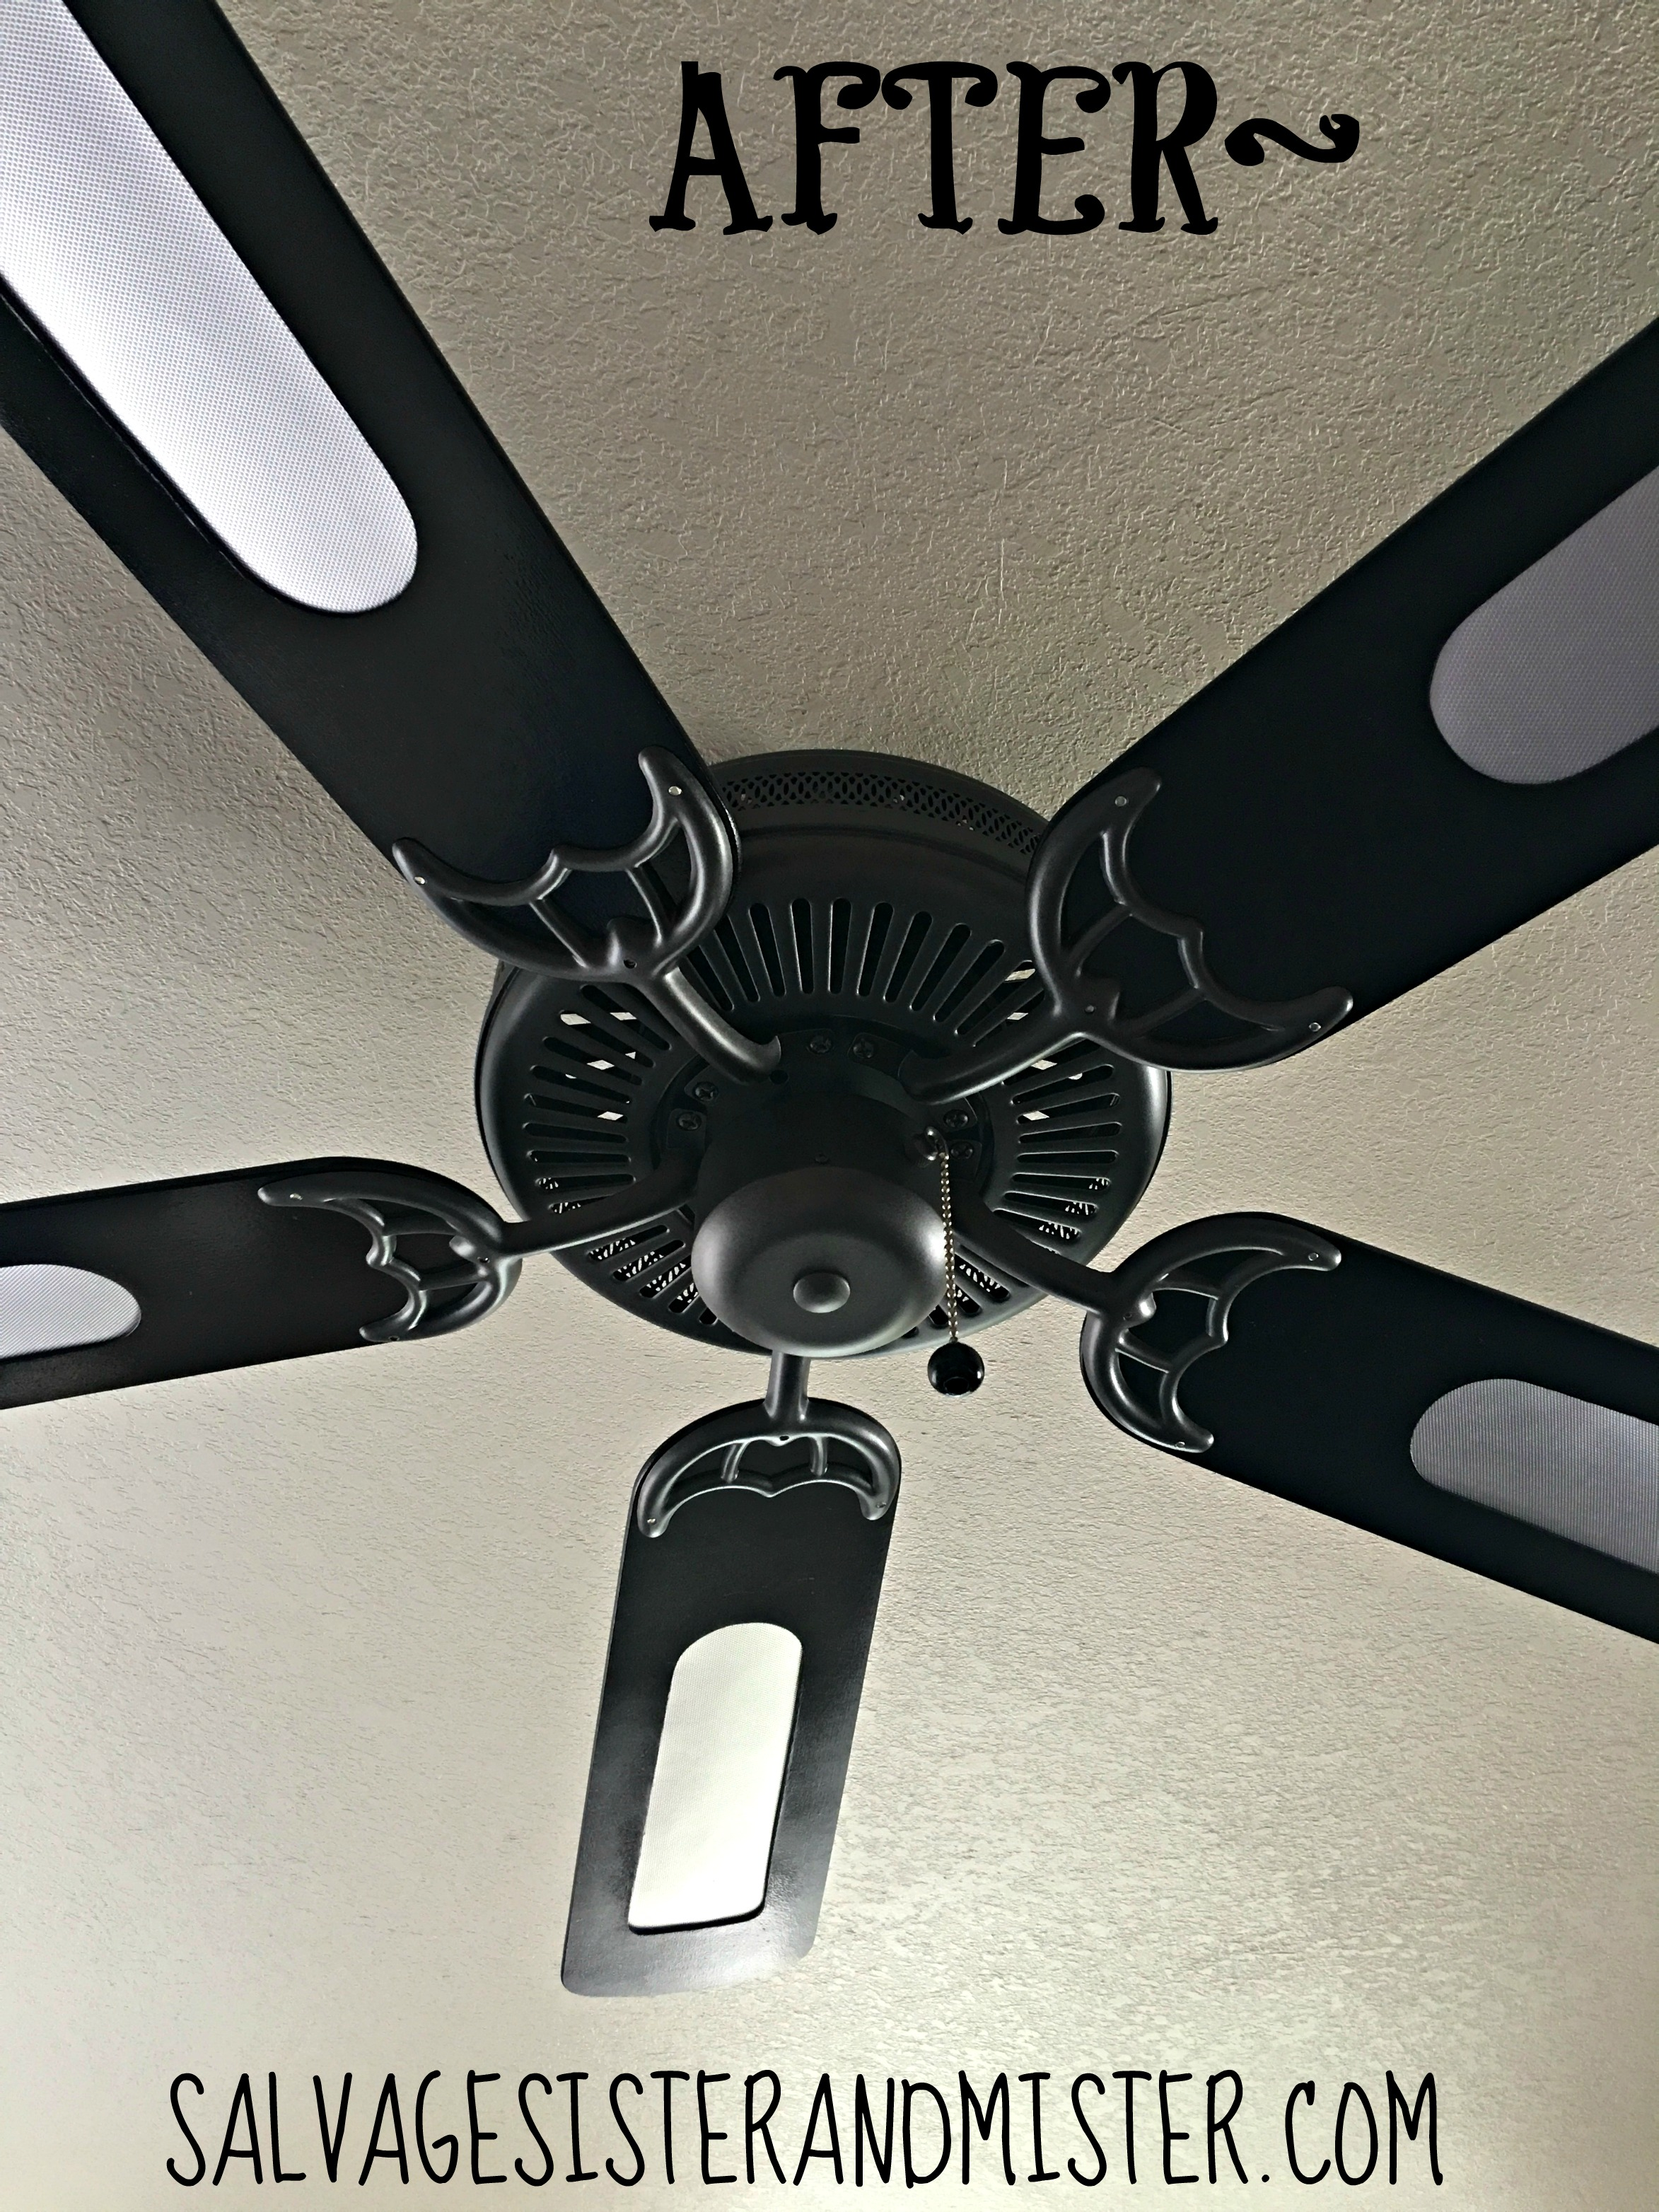 Brass ceiling fan makeover orc salvage sister and mister do you have an outdated ceiling fan for just about 10 we did this mozeypictures Gallery